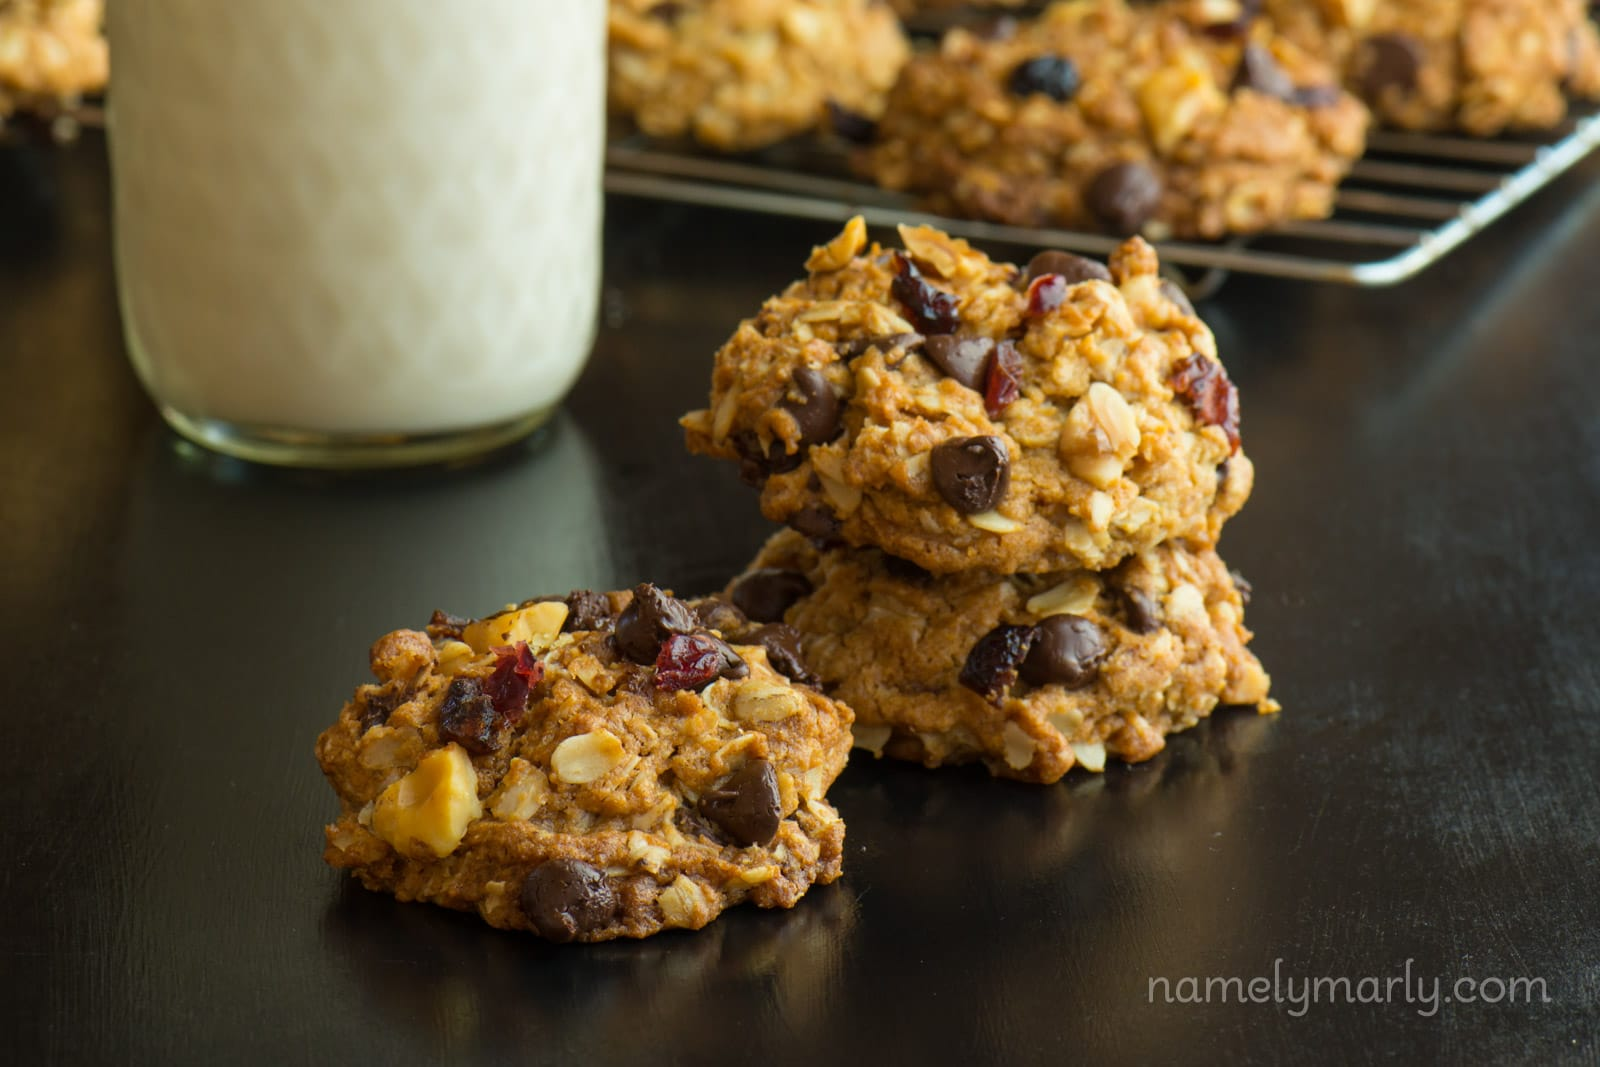 ... craisins), makes this one of the best vegan chocolate chip cookies